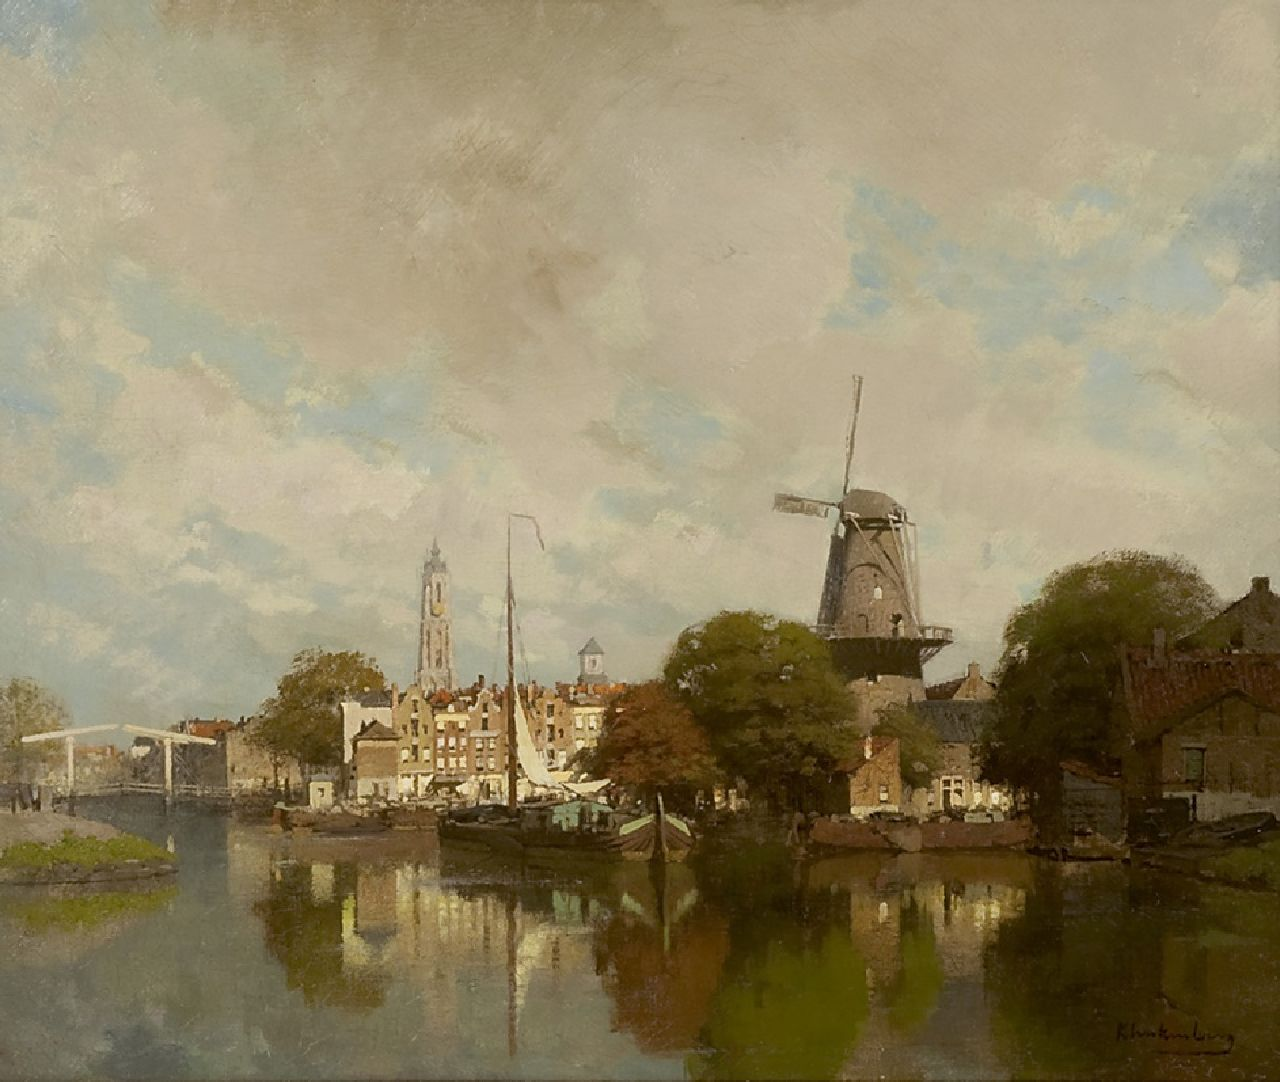 Klinkenberg J.C.K.  | Johannes Christiaan Karel Klinkenberg | Paintings offered for sale | A view of a town with the Groenmolen and tower of the Nieuwe Kerk of Delft, oil on canvas 39.5 x 47.4 cm, signed l.r.